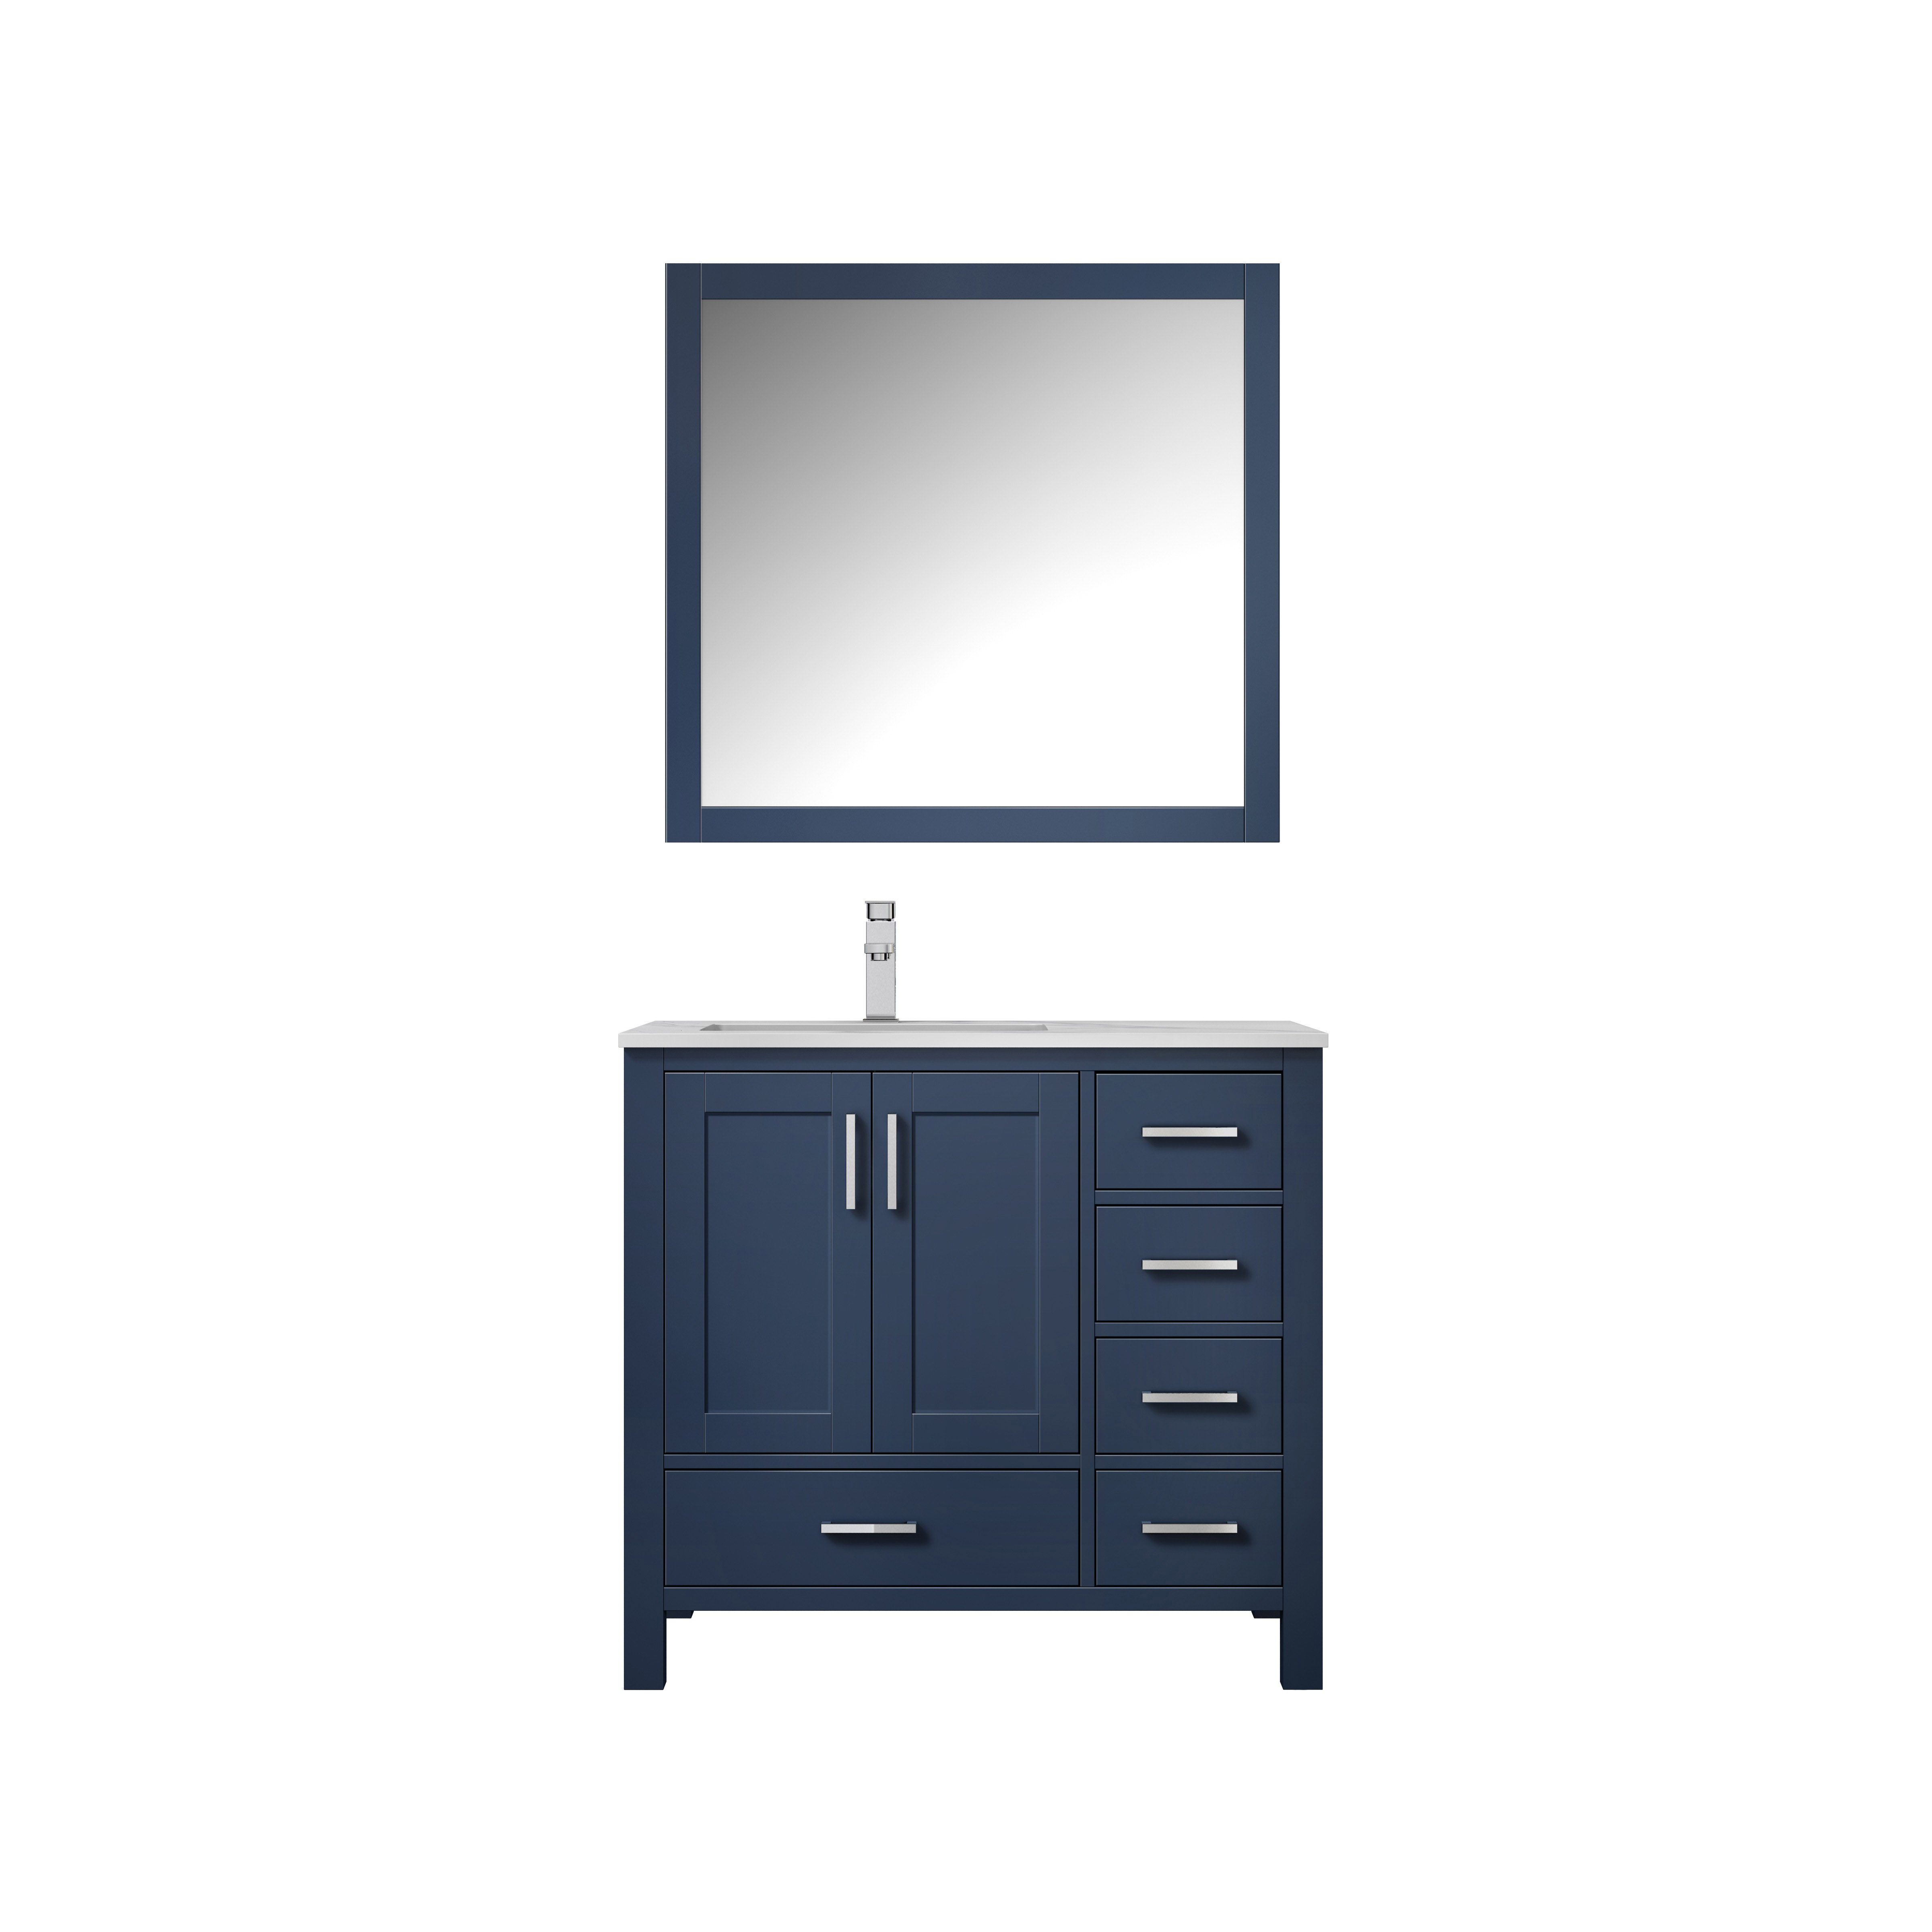 """36"""" Navy Blue Vanity Cabinet Only - Left Version with Countertop and Mirror Options"""